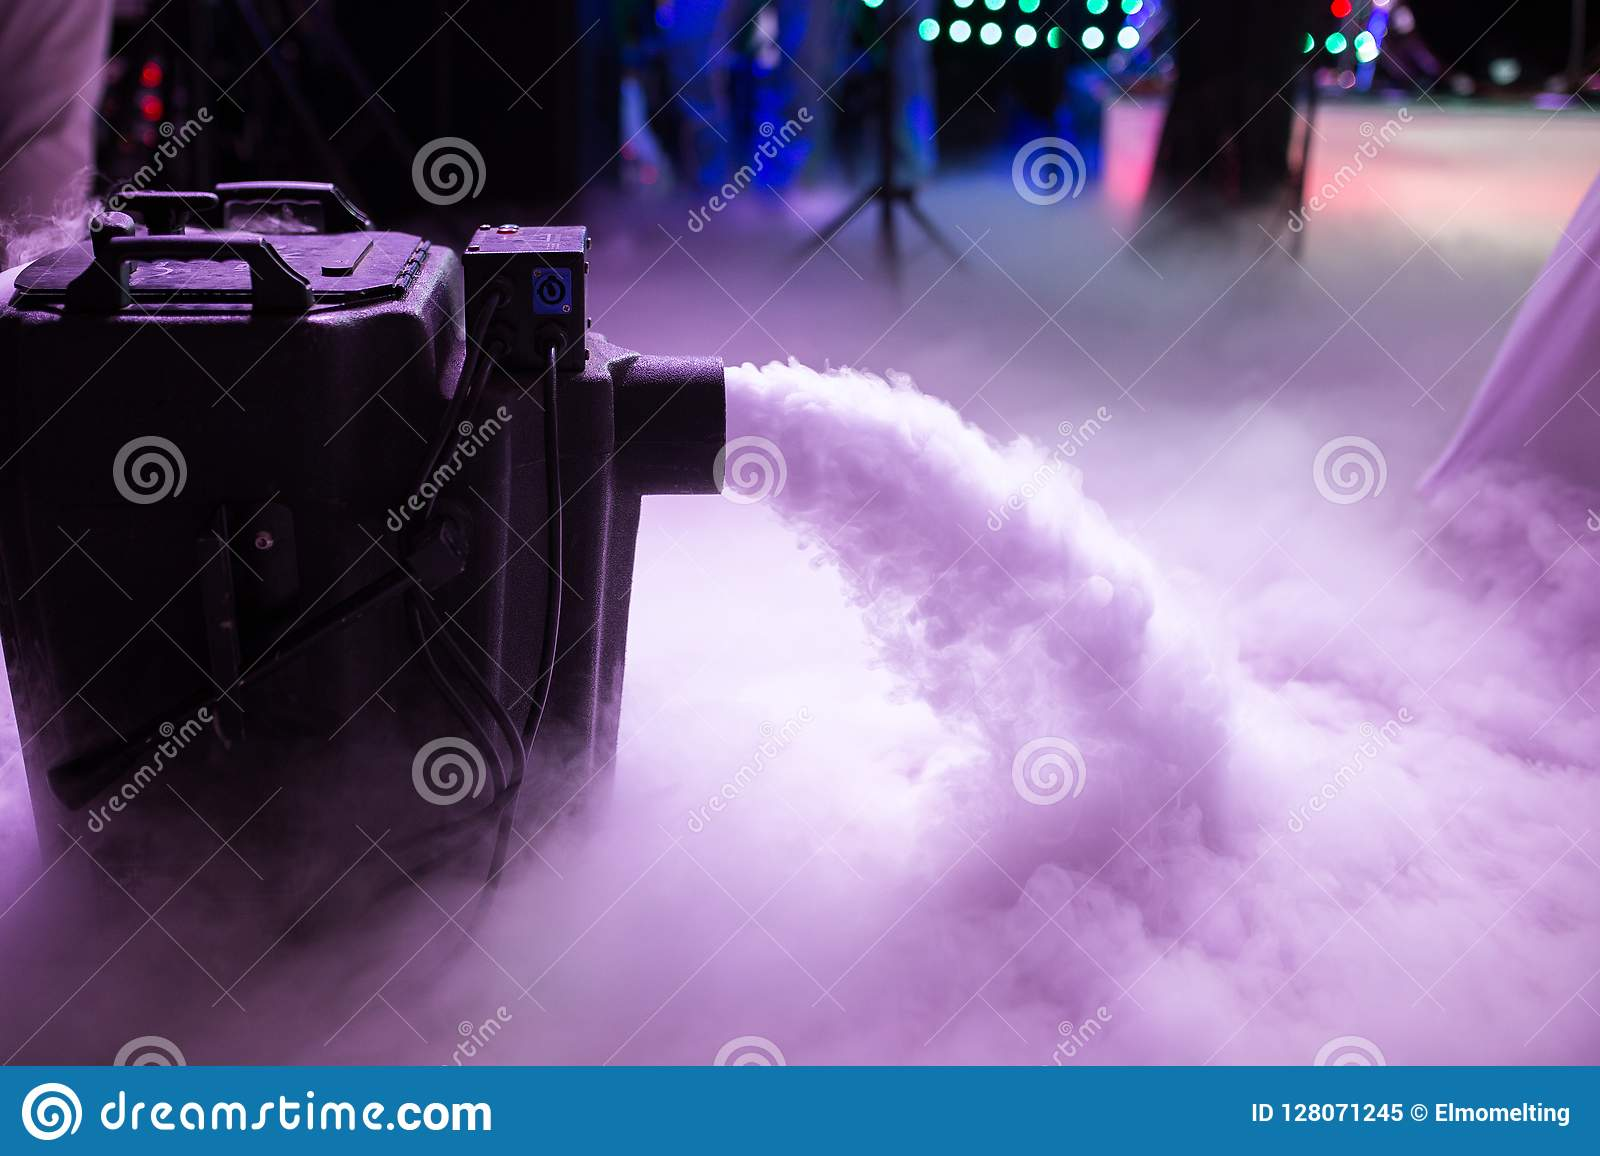 Dry Ice Low Fog Machine With Hands On For Wedding First Dance In